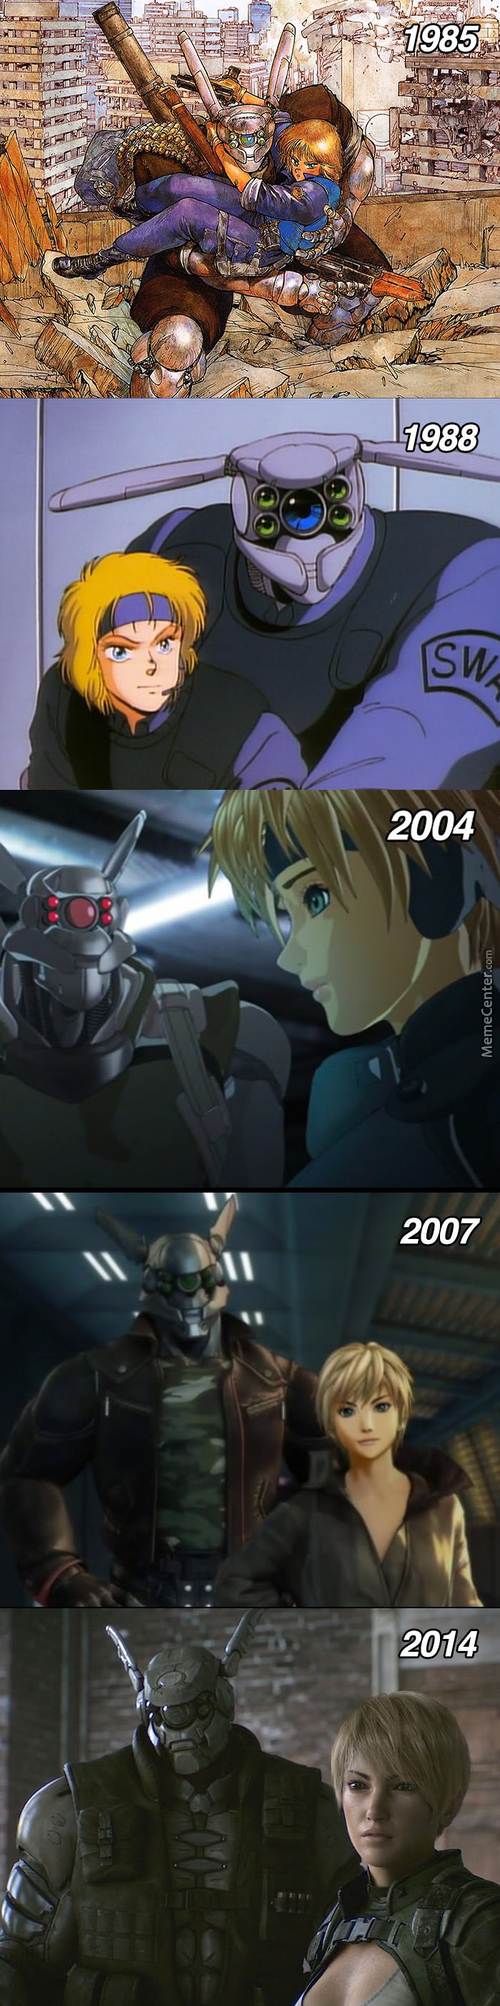 Appleseed Characters Through The Years